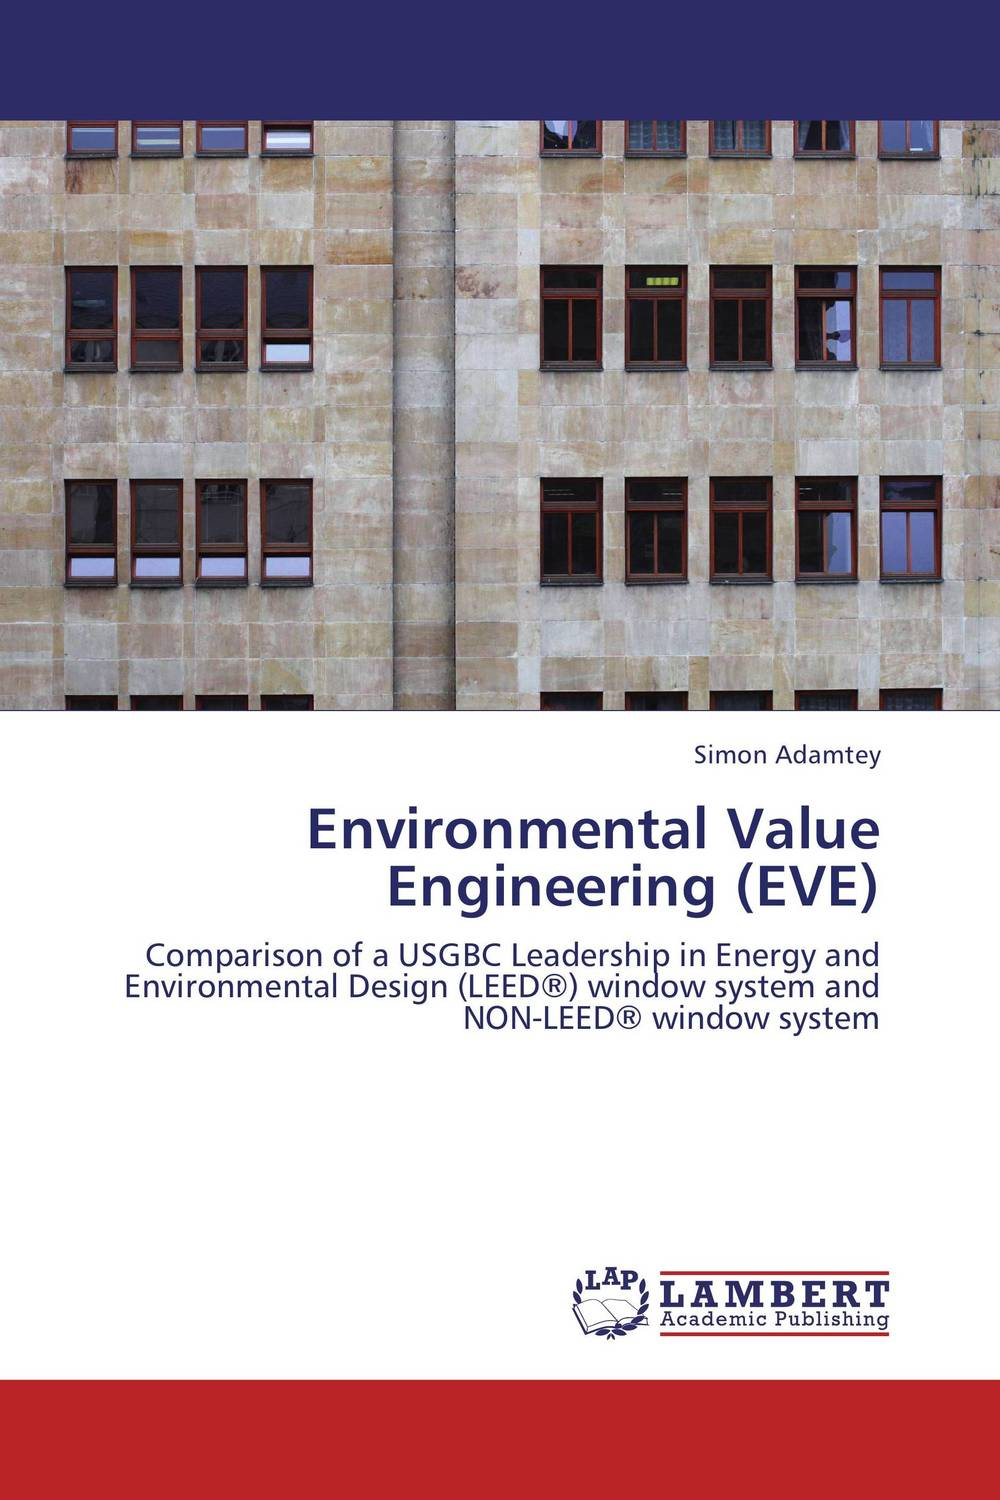 Environmental Value Engineering (EVE) building value through human resources